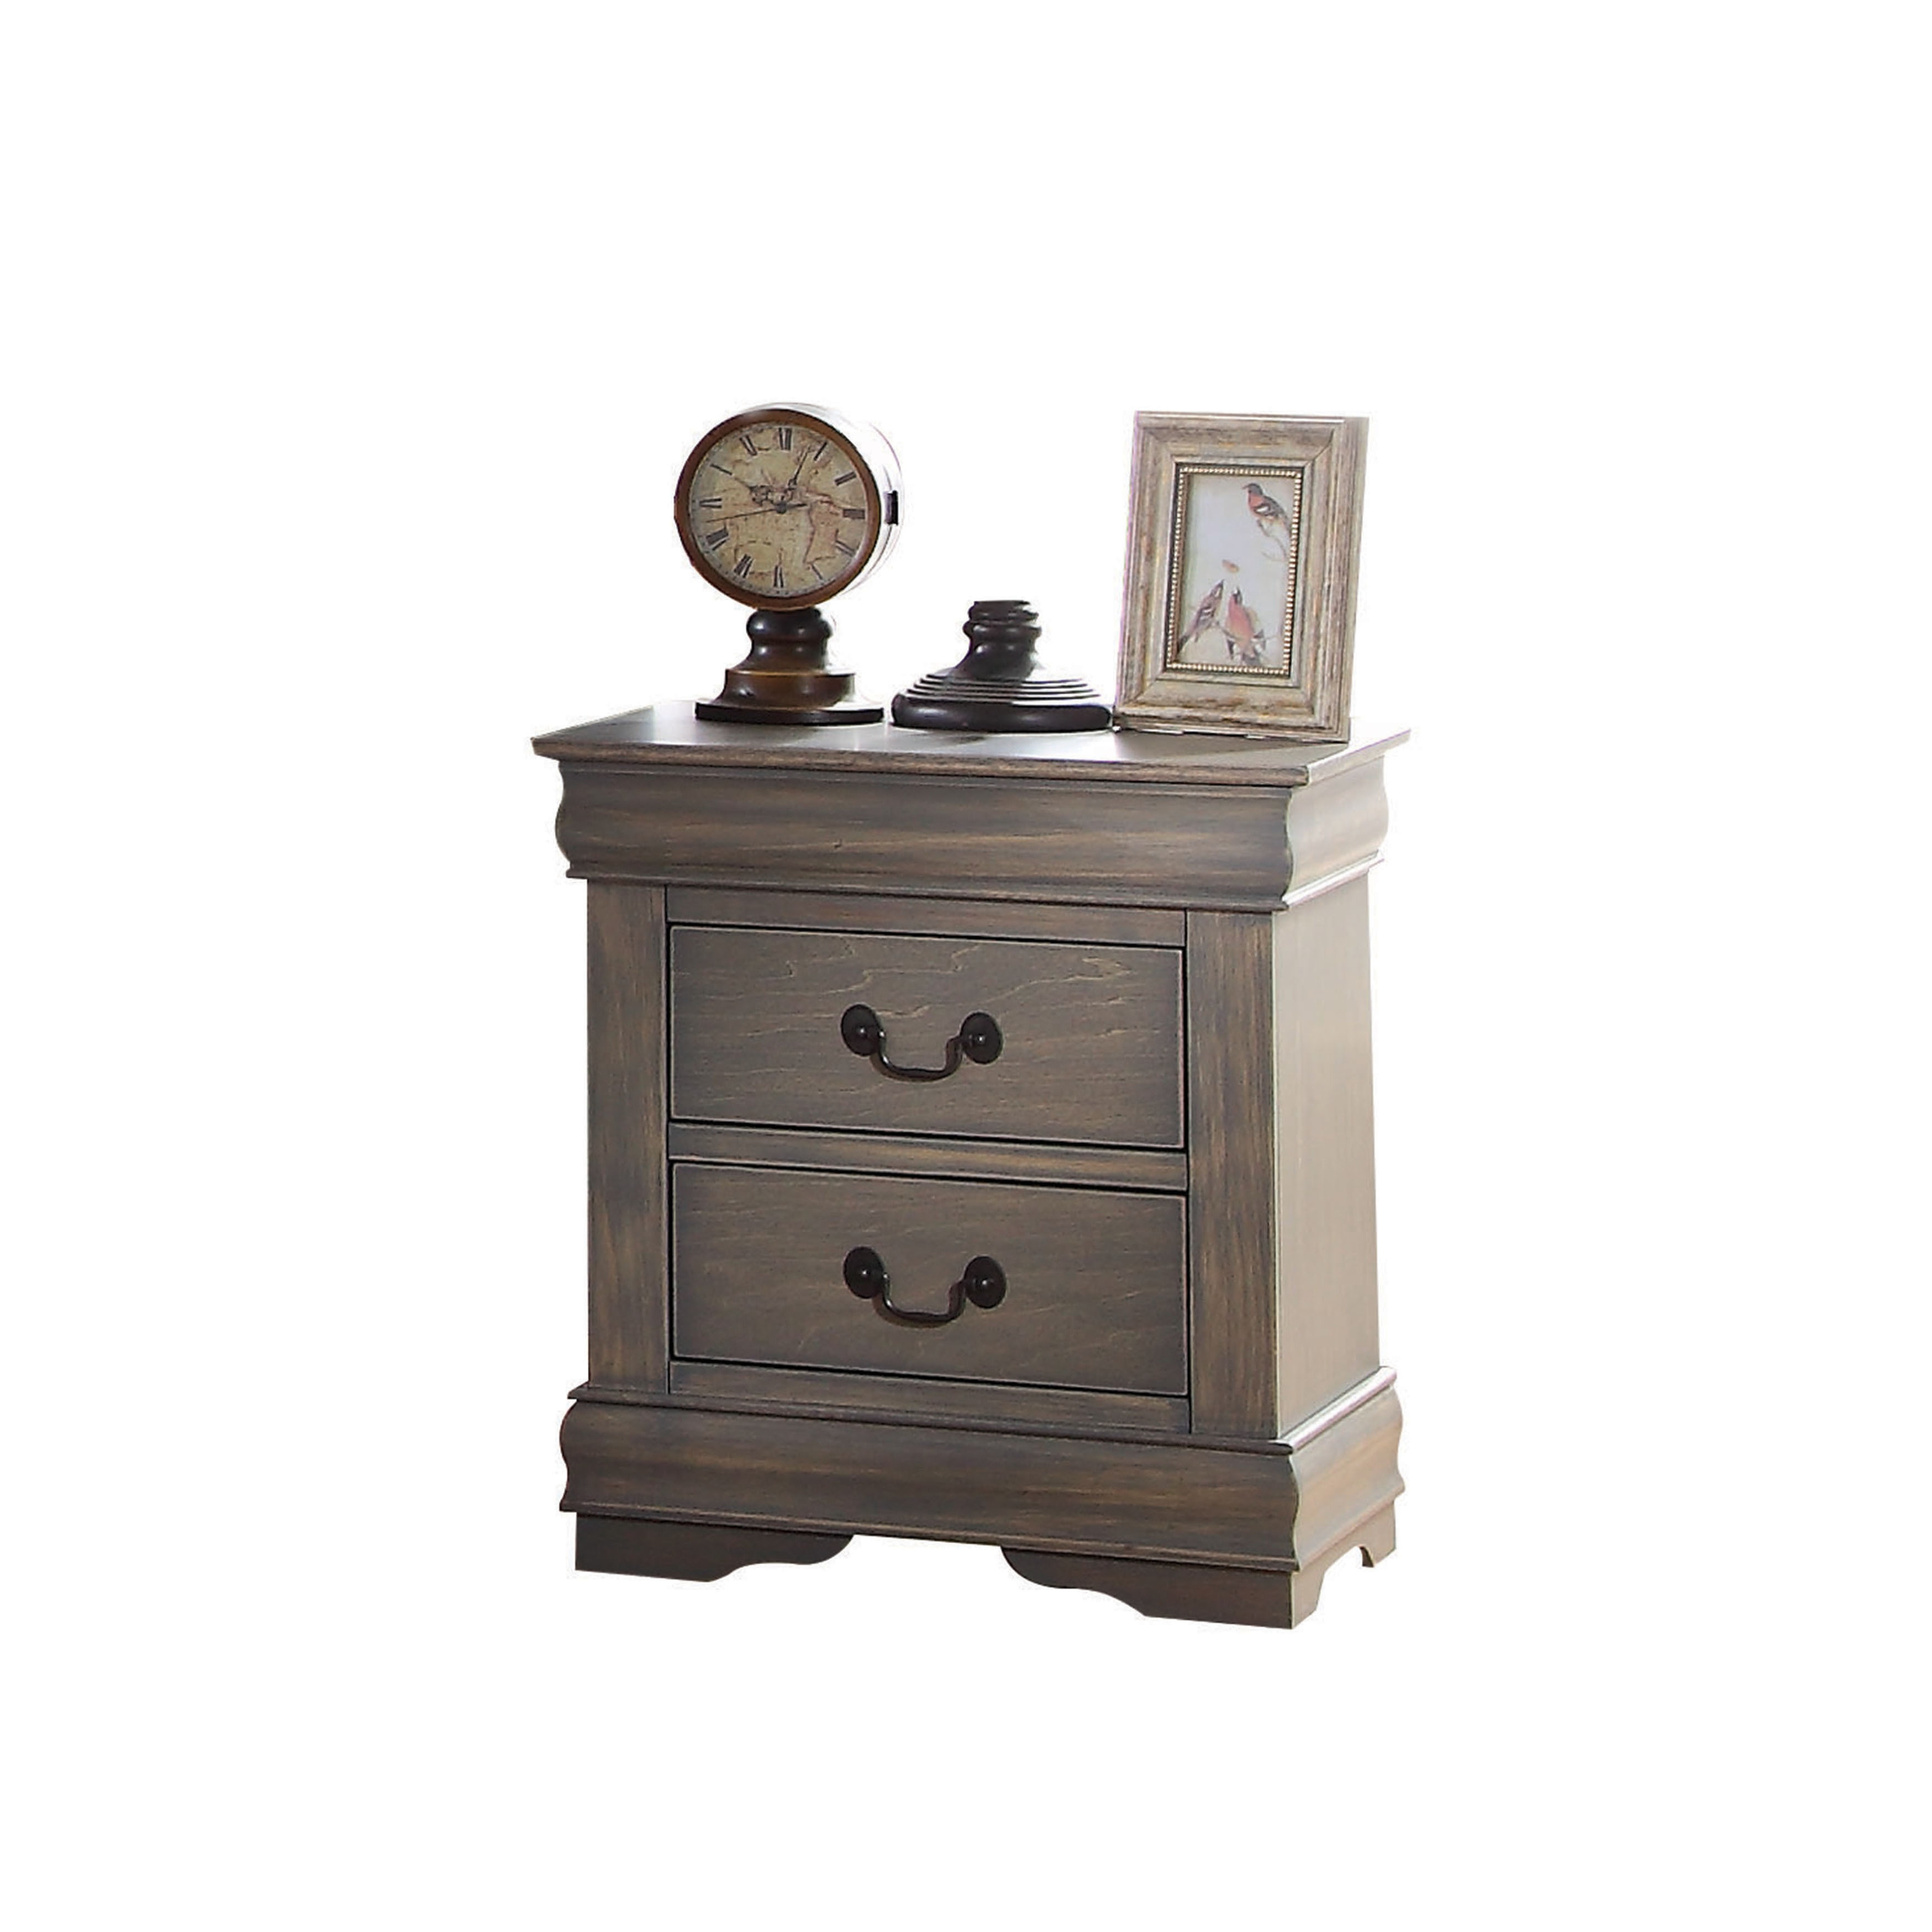 bf36ba30c30 Buy Nightstands And Bedside Tables Online At Overstock